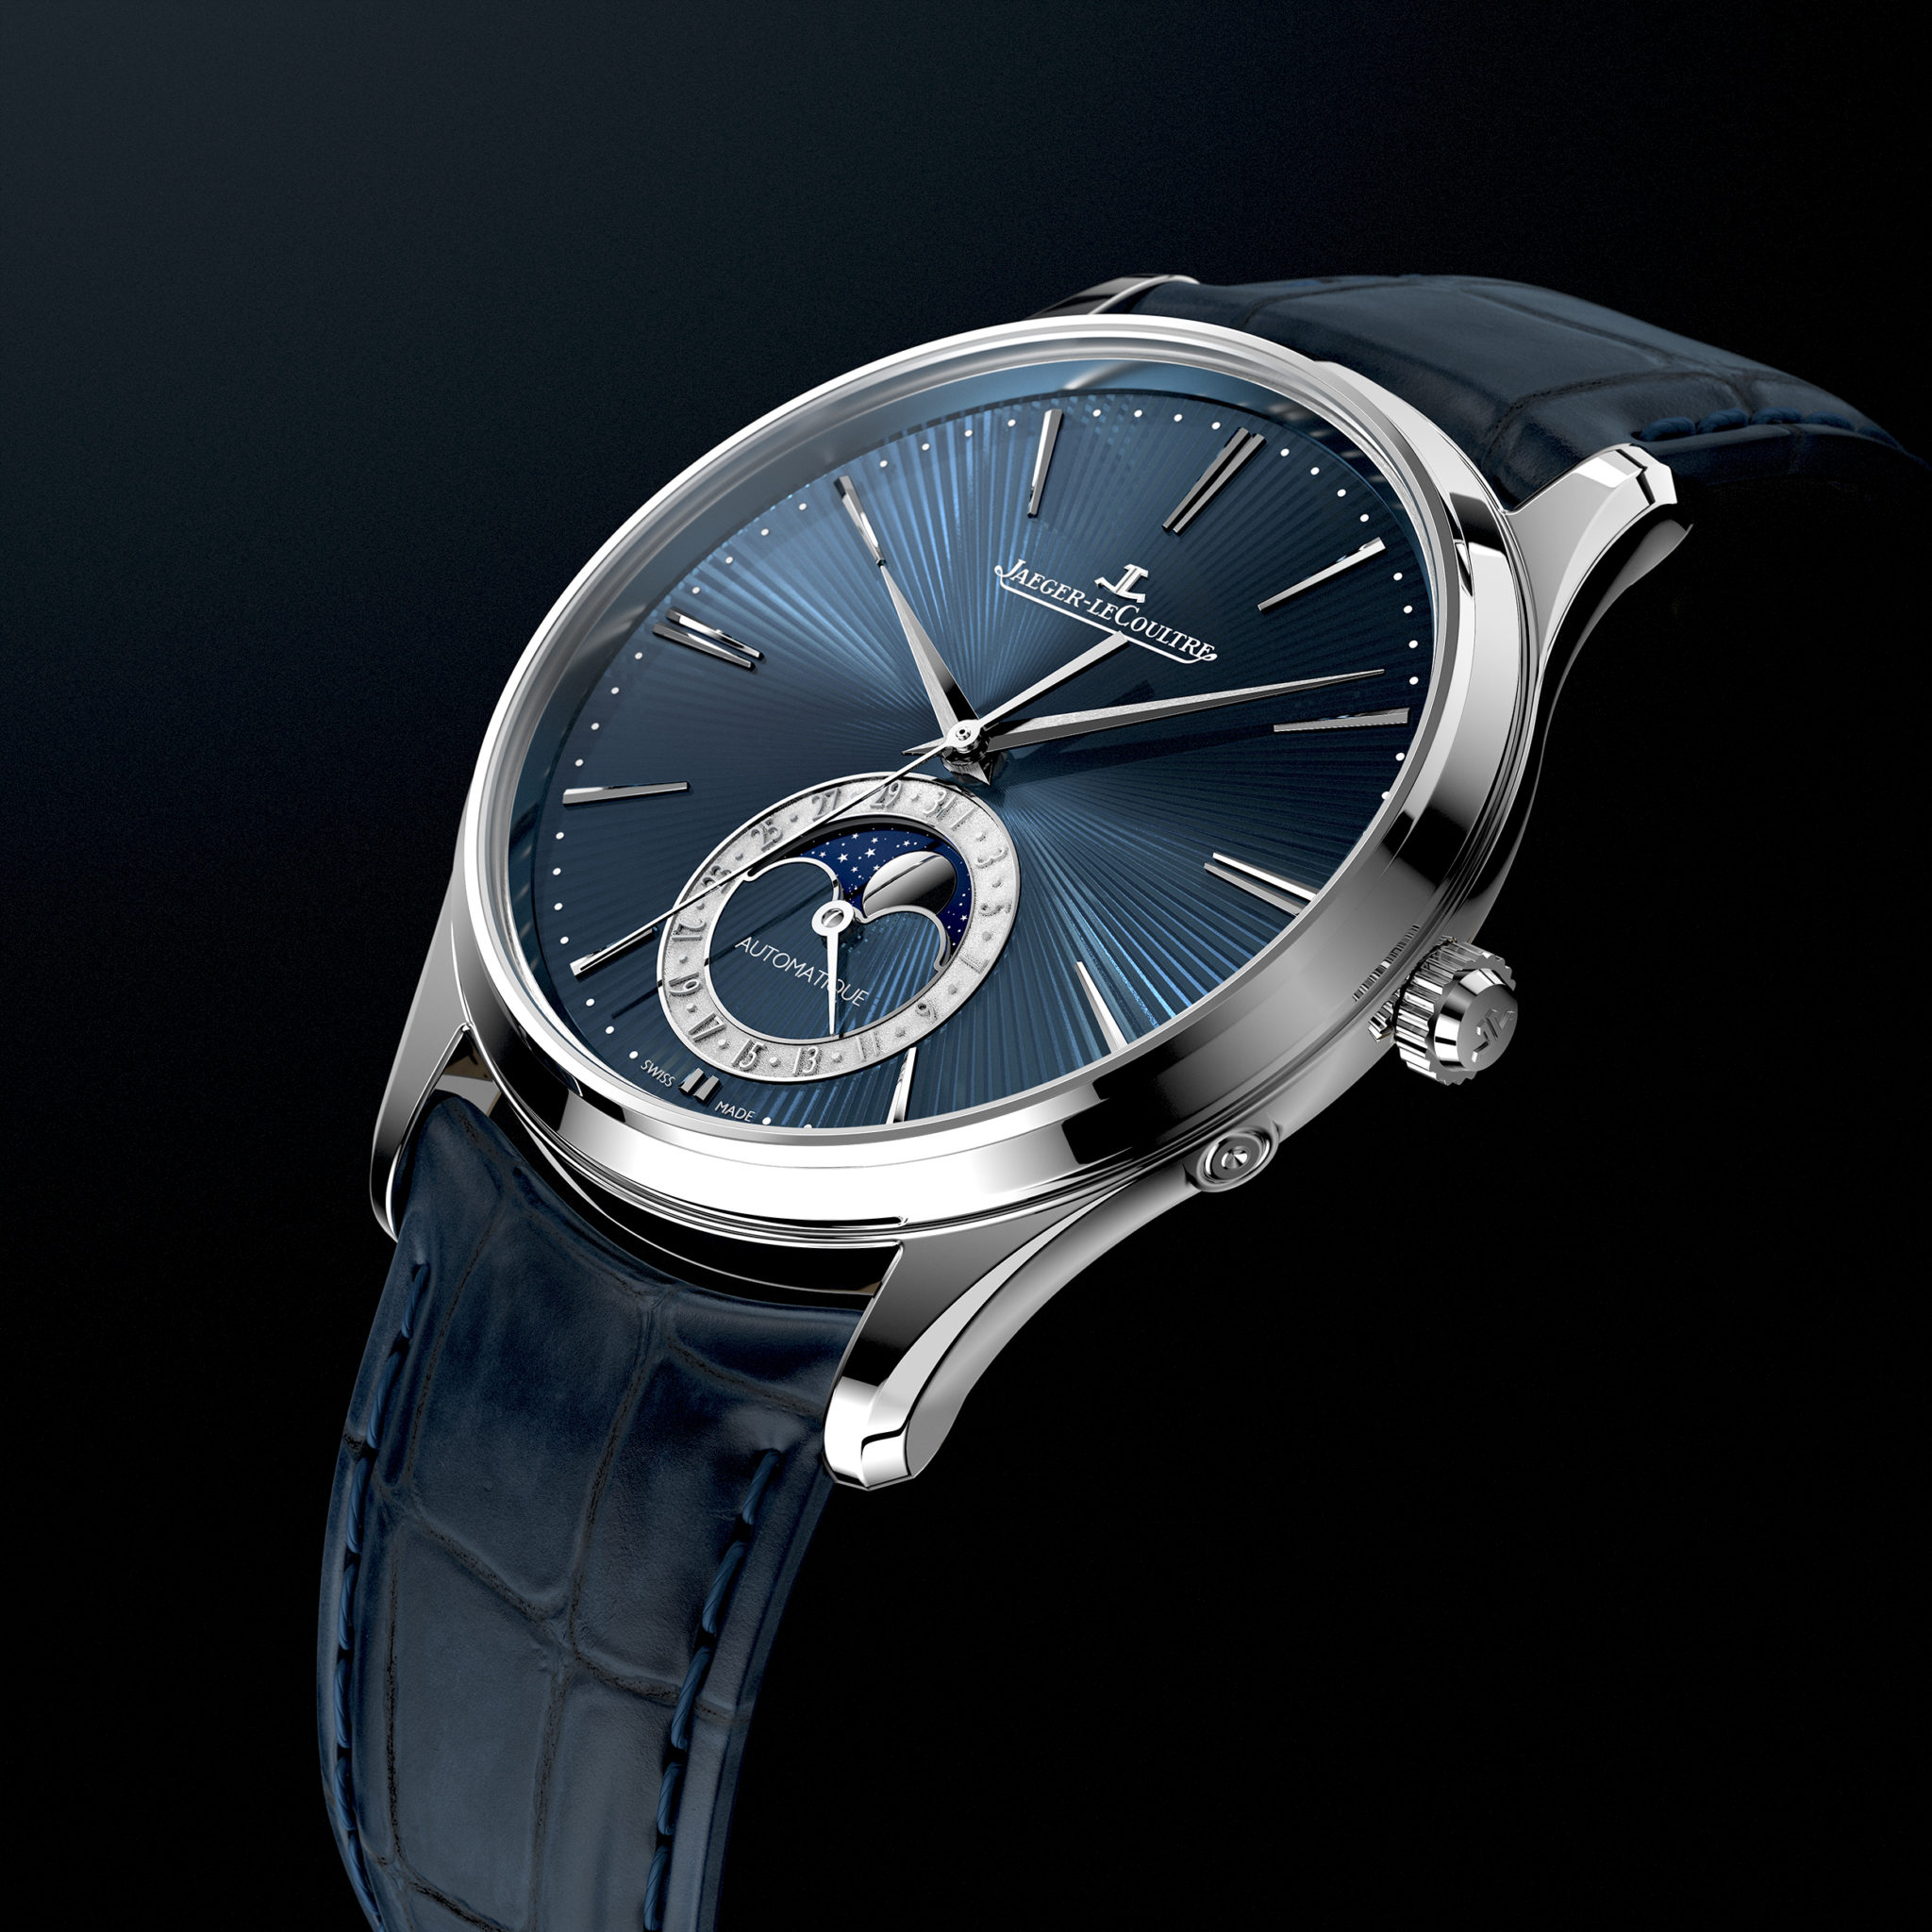 cac589135c3 Watch trend-spotting at SIHH - WatchPro